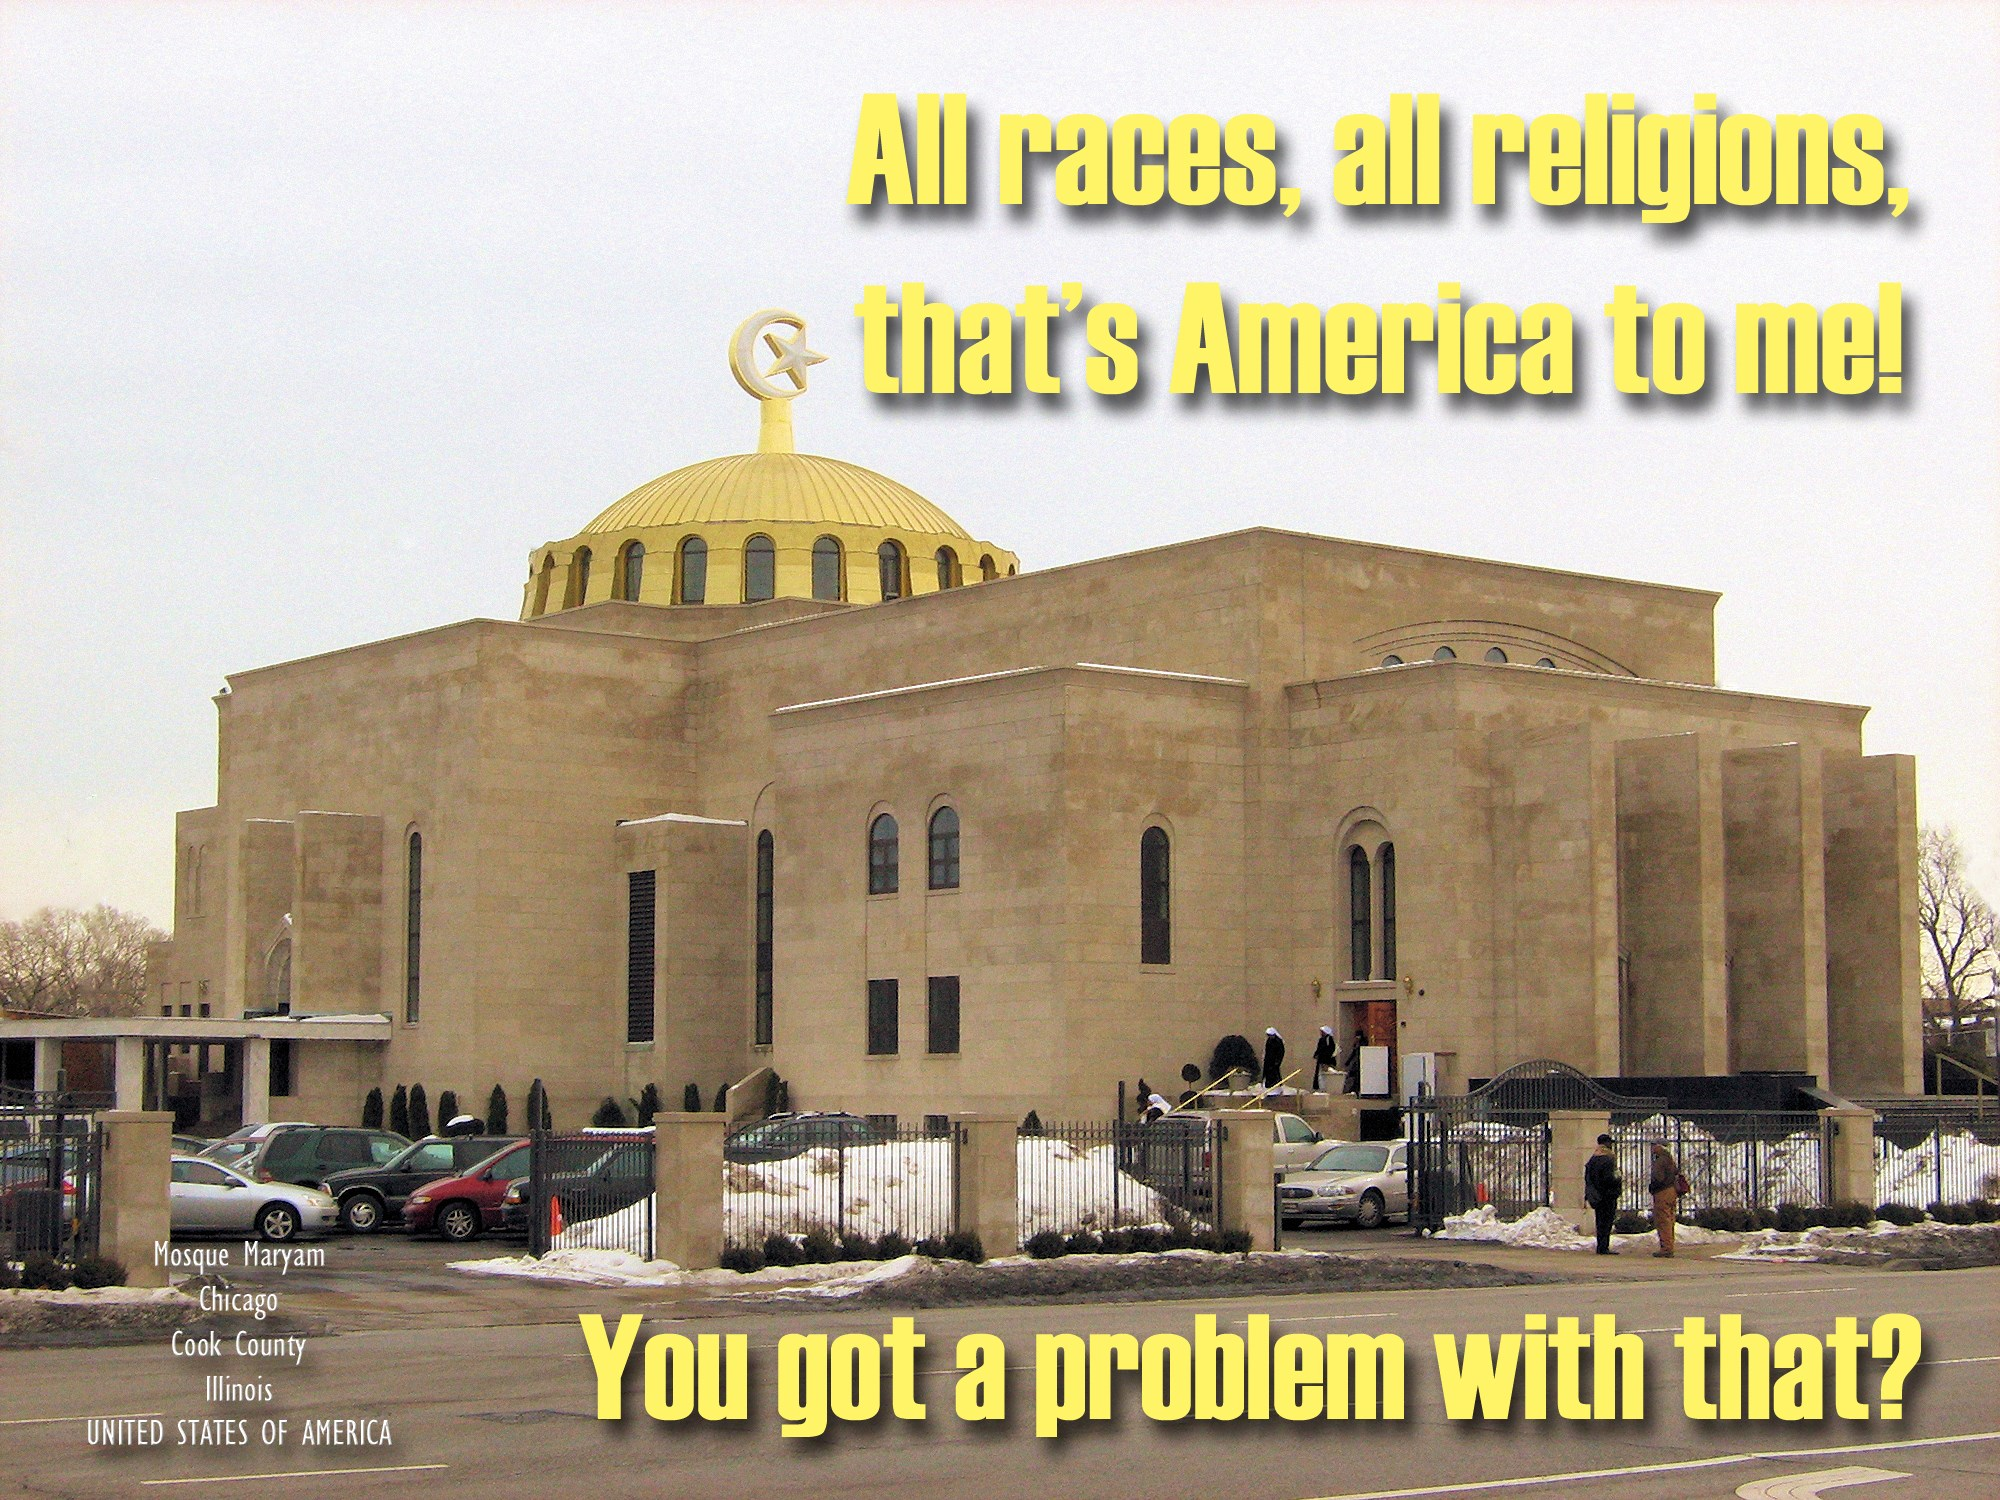 00 Mosque Maryam. Chicago IL USA. all races all religions. 010715